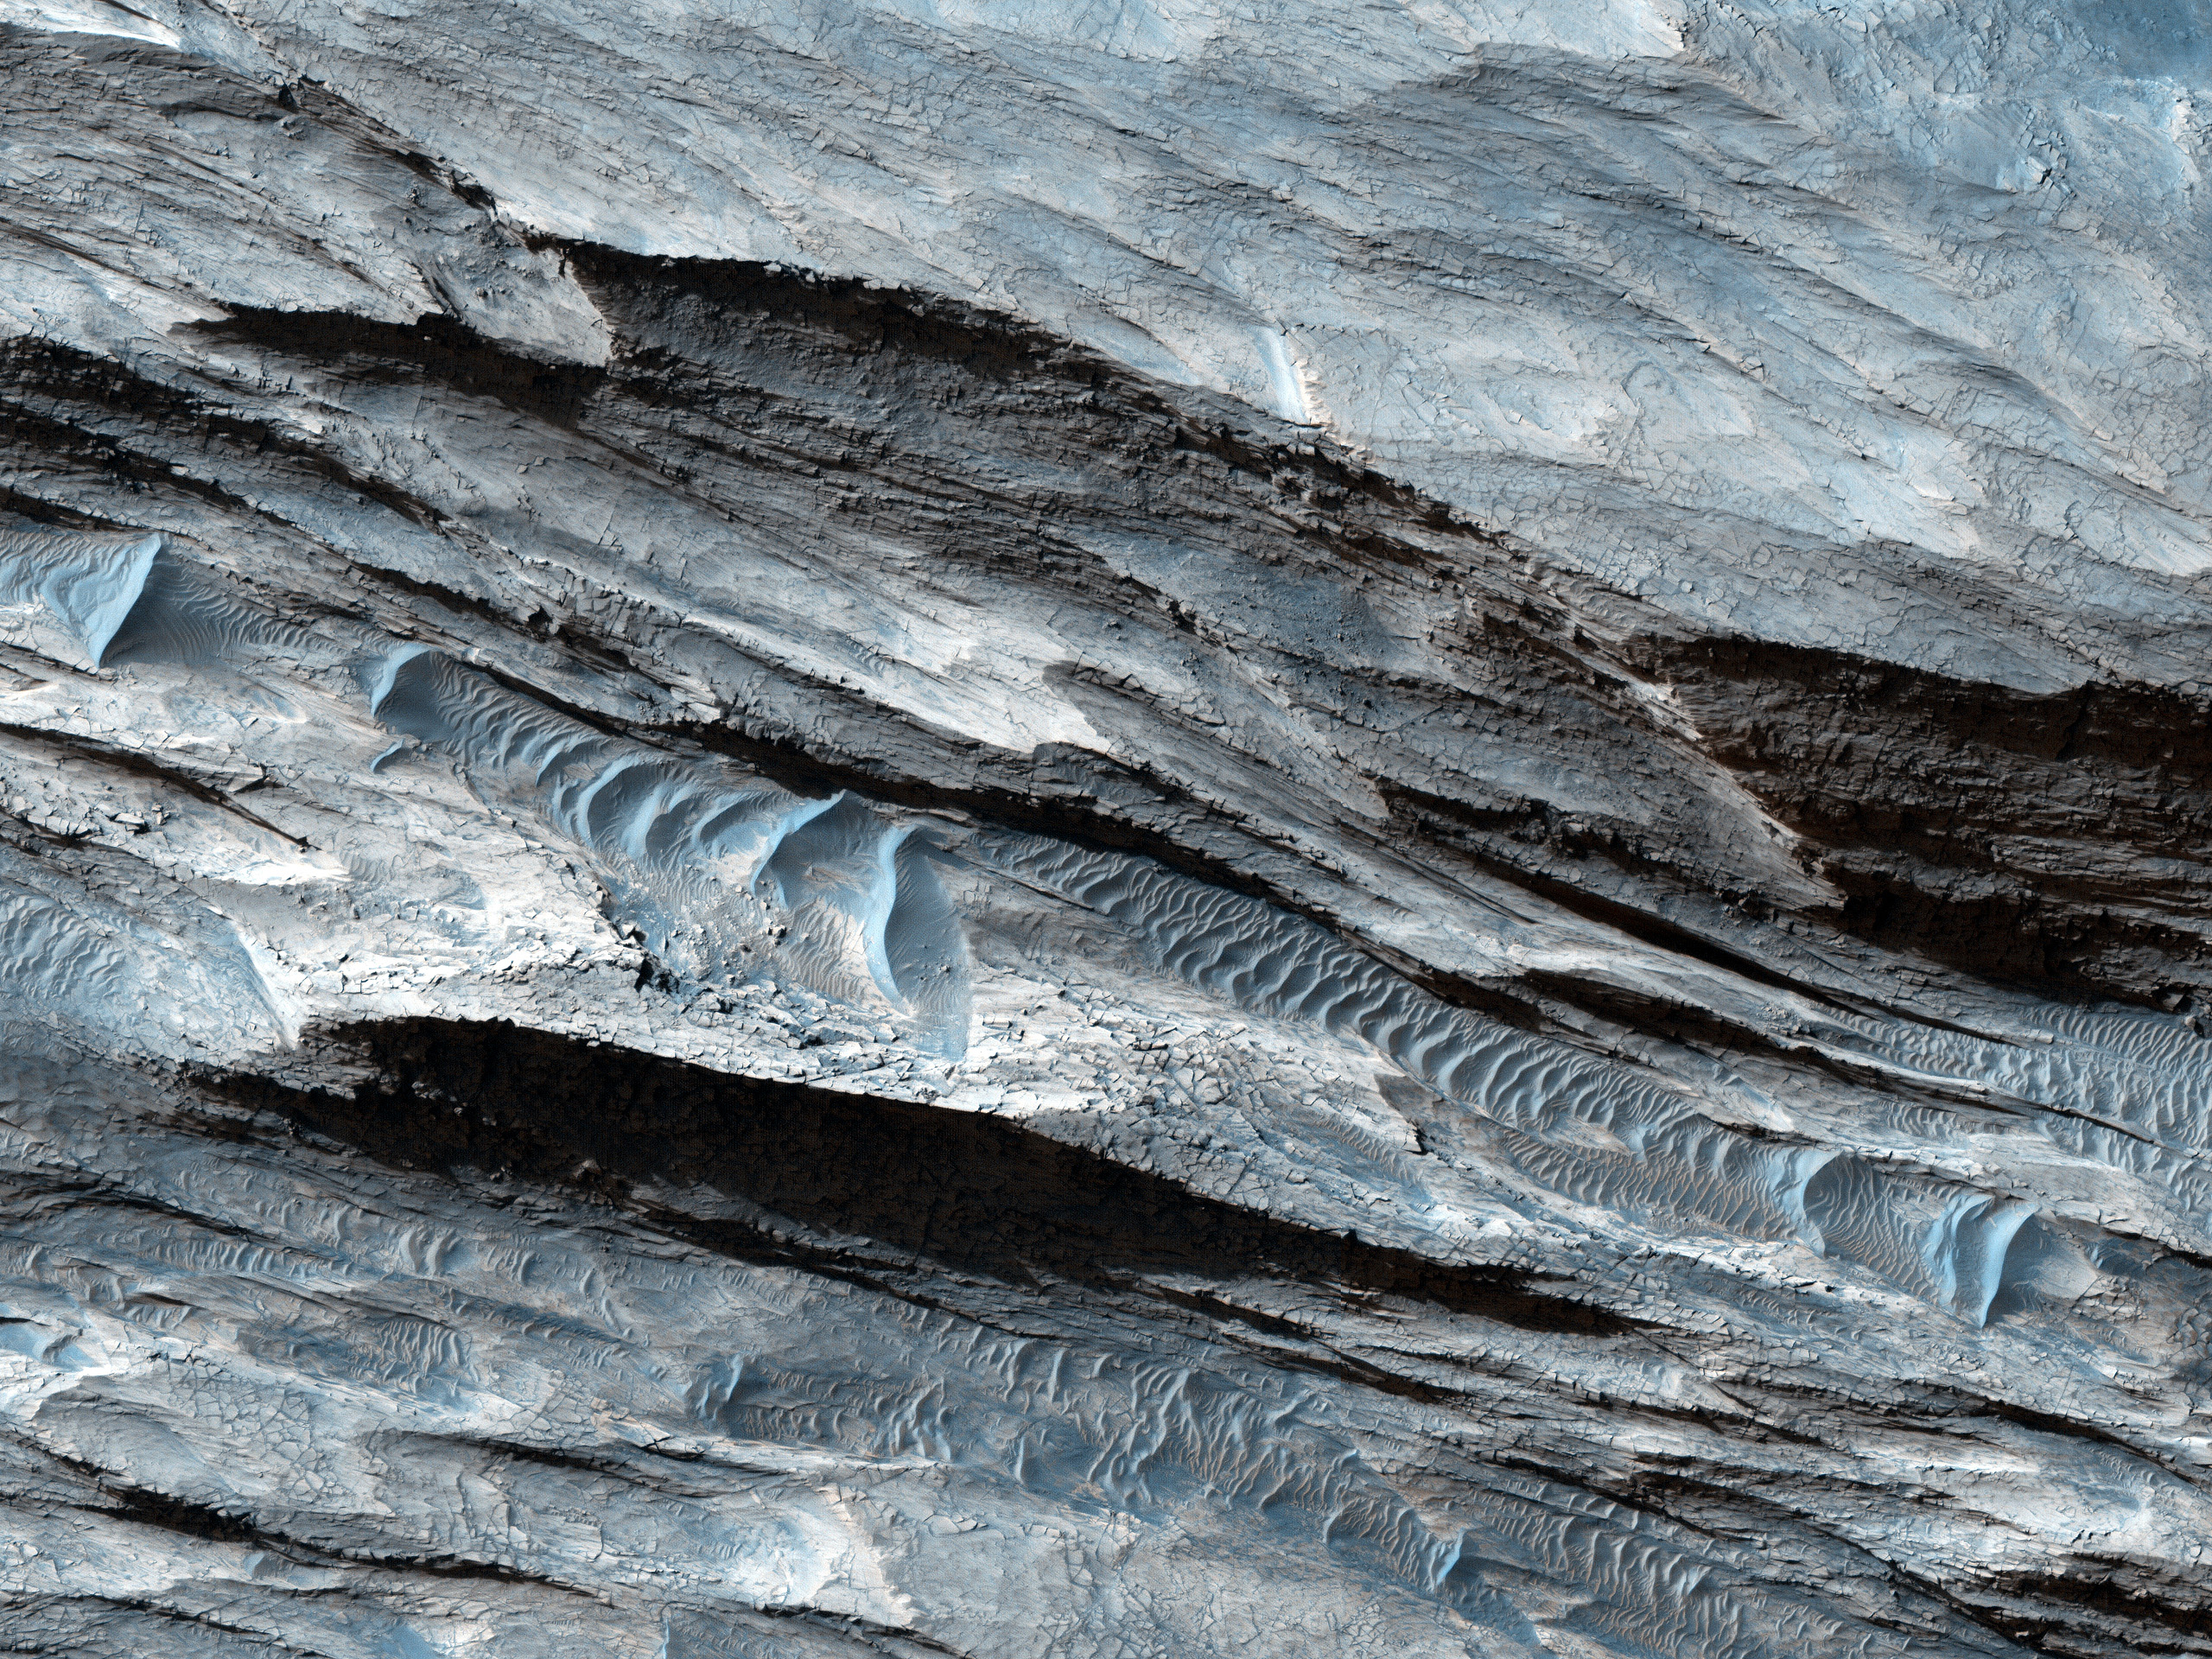 Basin in the West Candor Chasma Layered Deposits